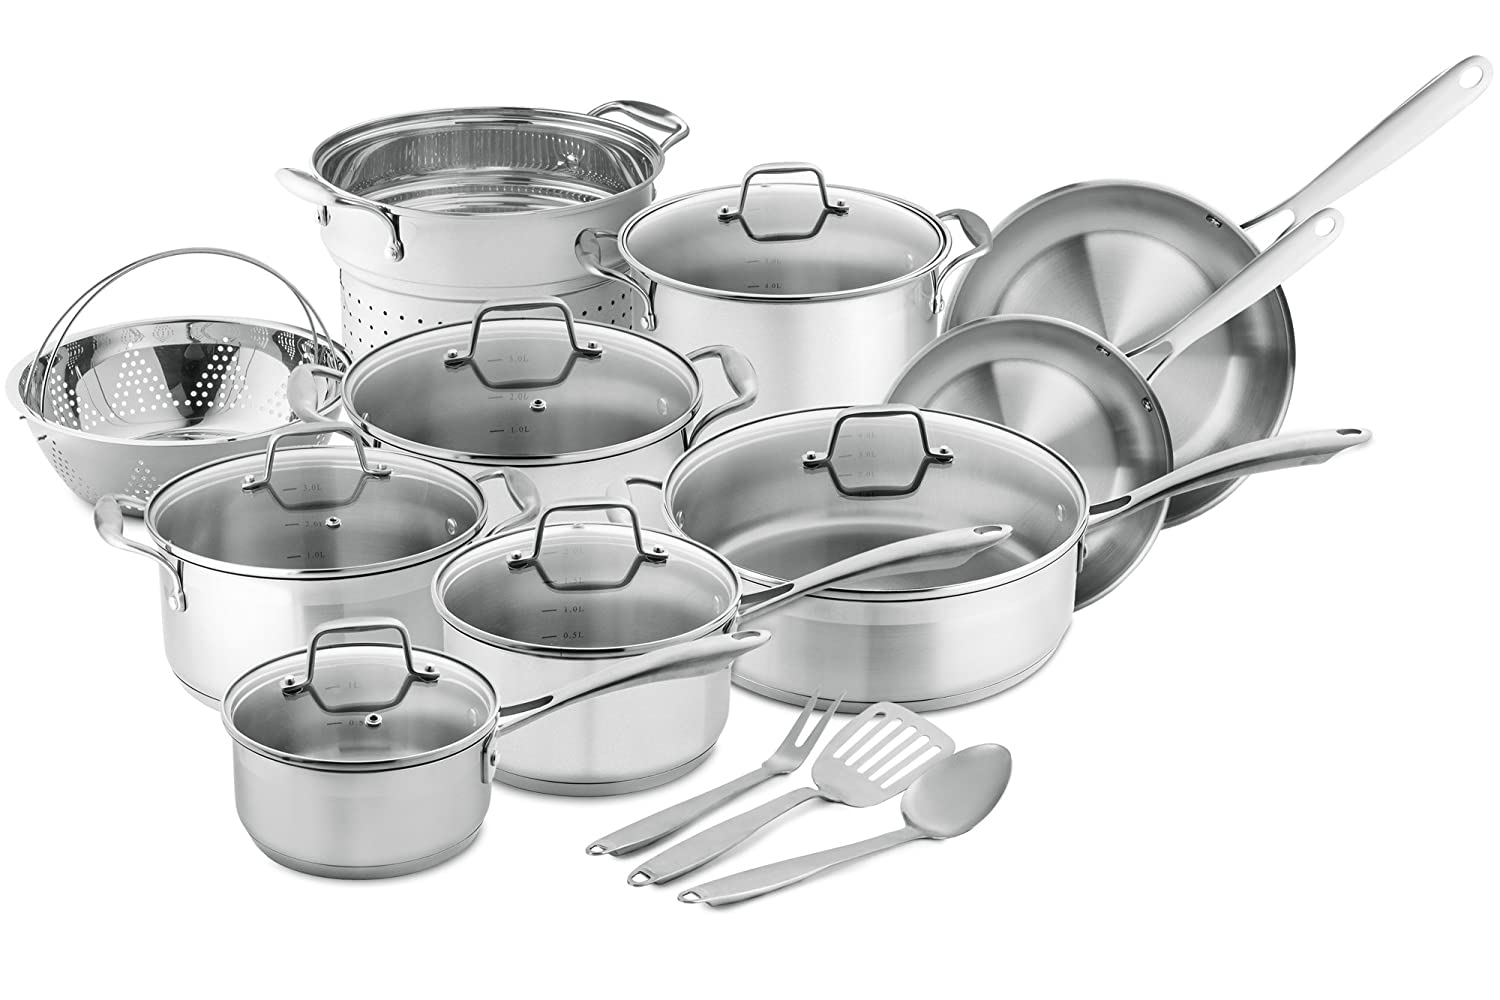 Amazon.com: Chef\'s Star 17-Piece Pots & Pans Star Stainless Steel ...